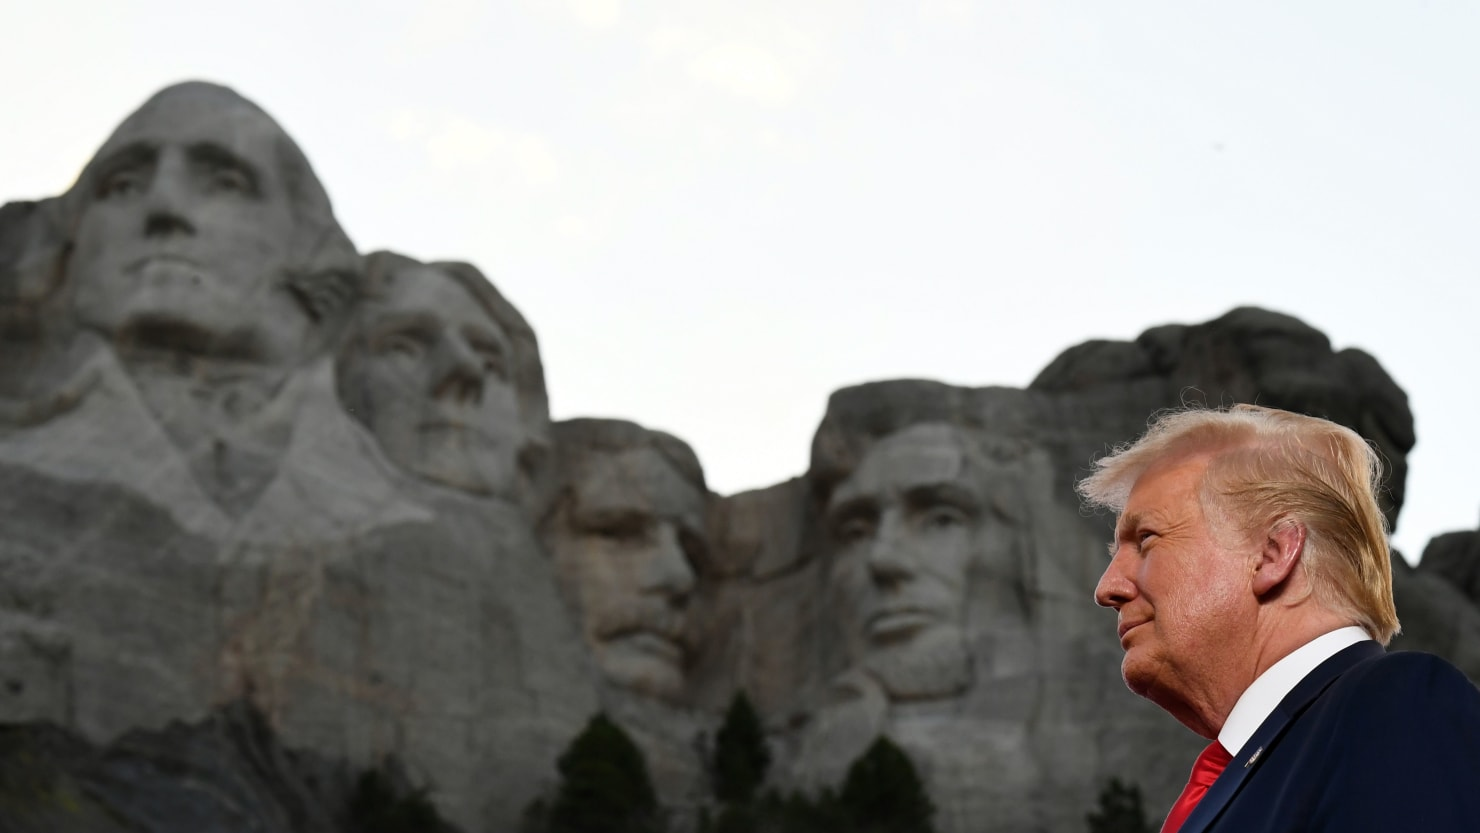 Trump Denies Asking About Adding His Big Head to Mount Rushmore, Then Says It's a 'Good Idea'